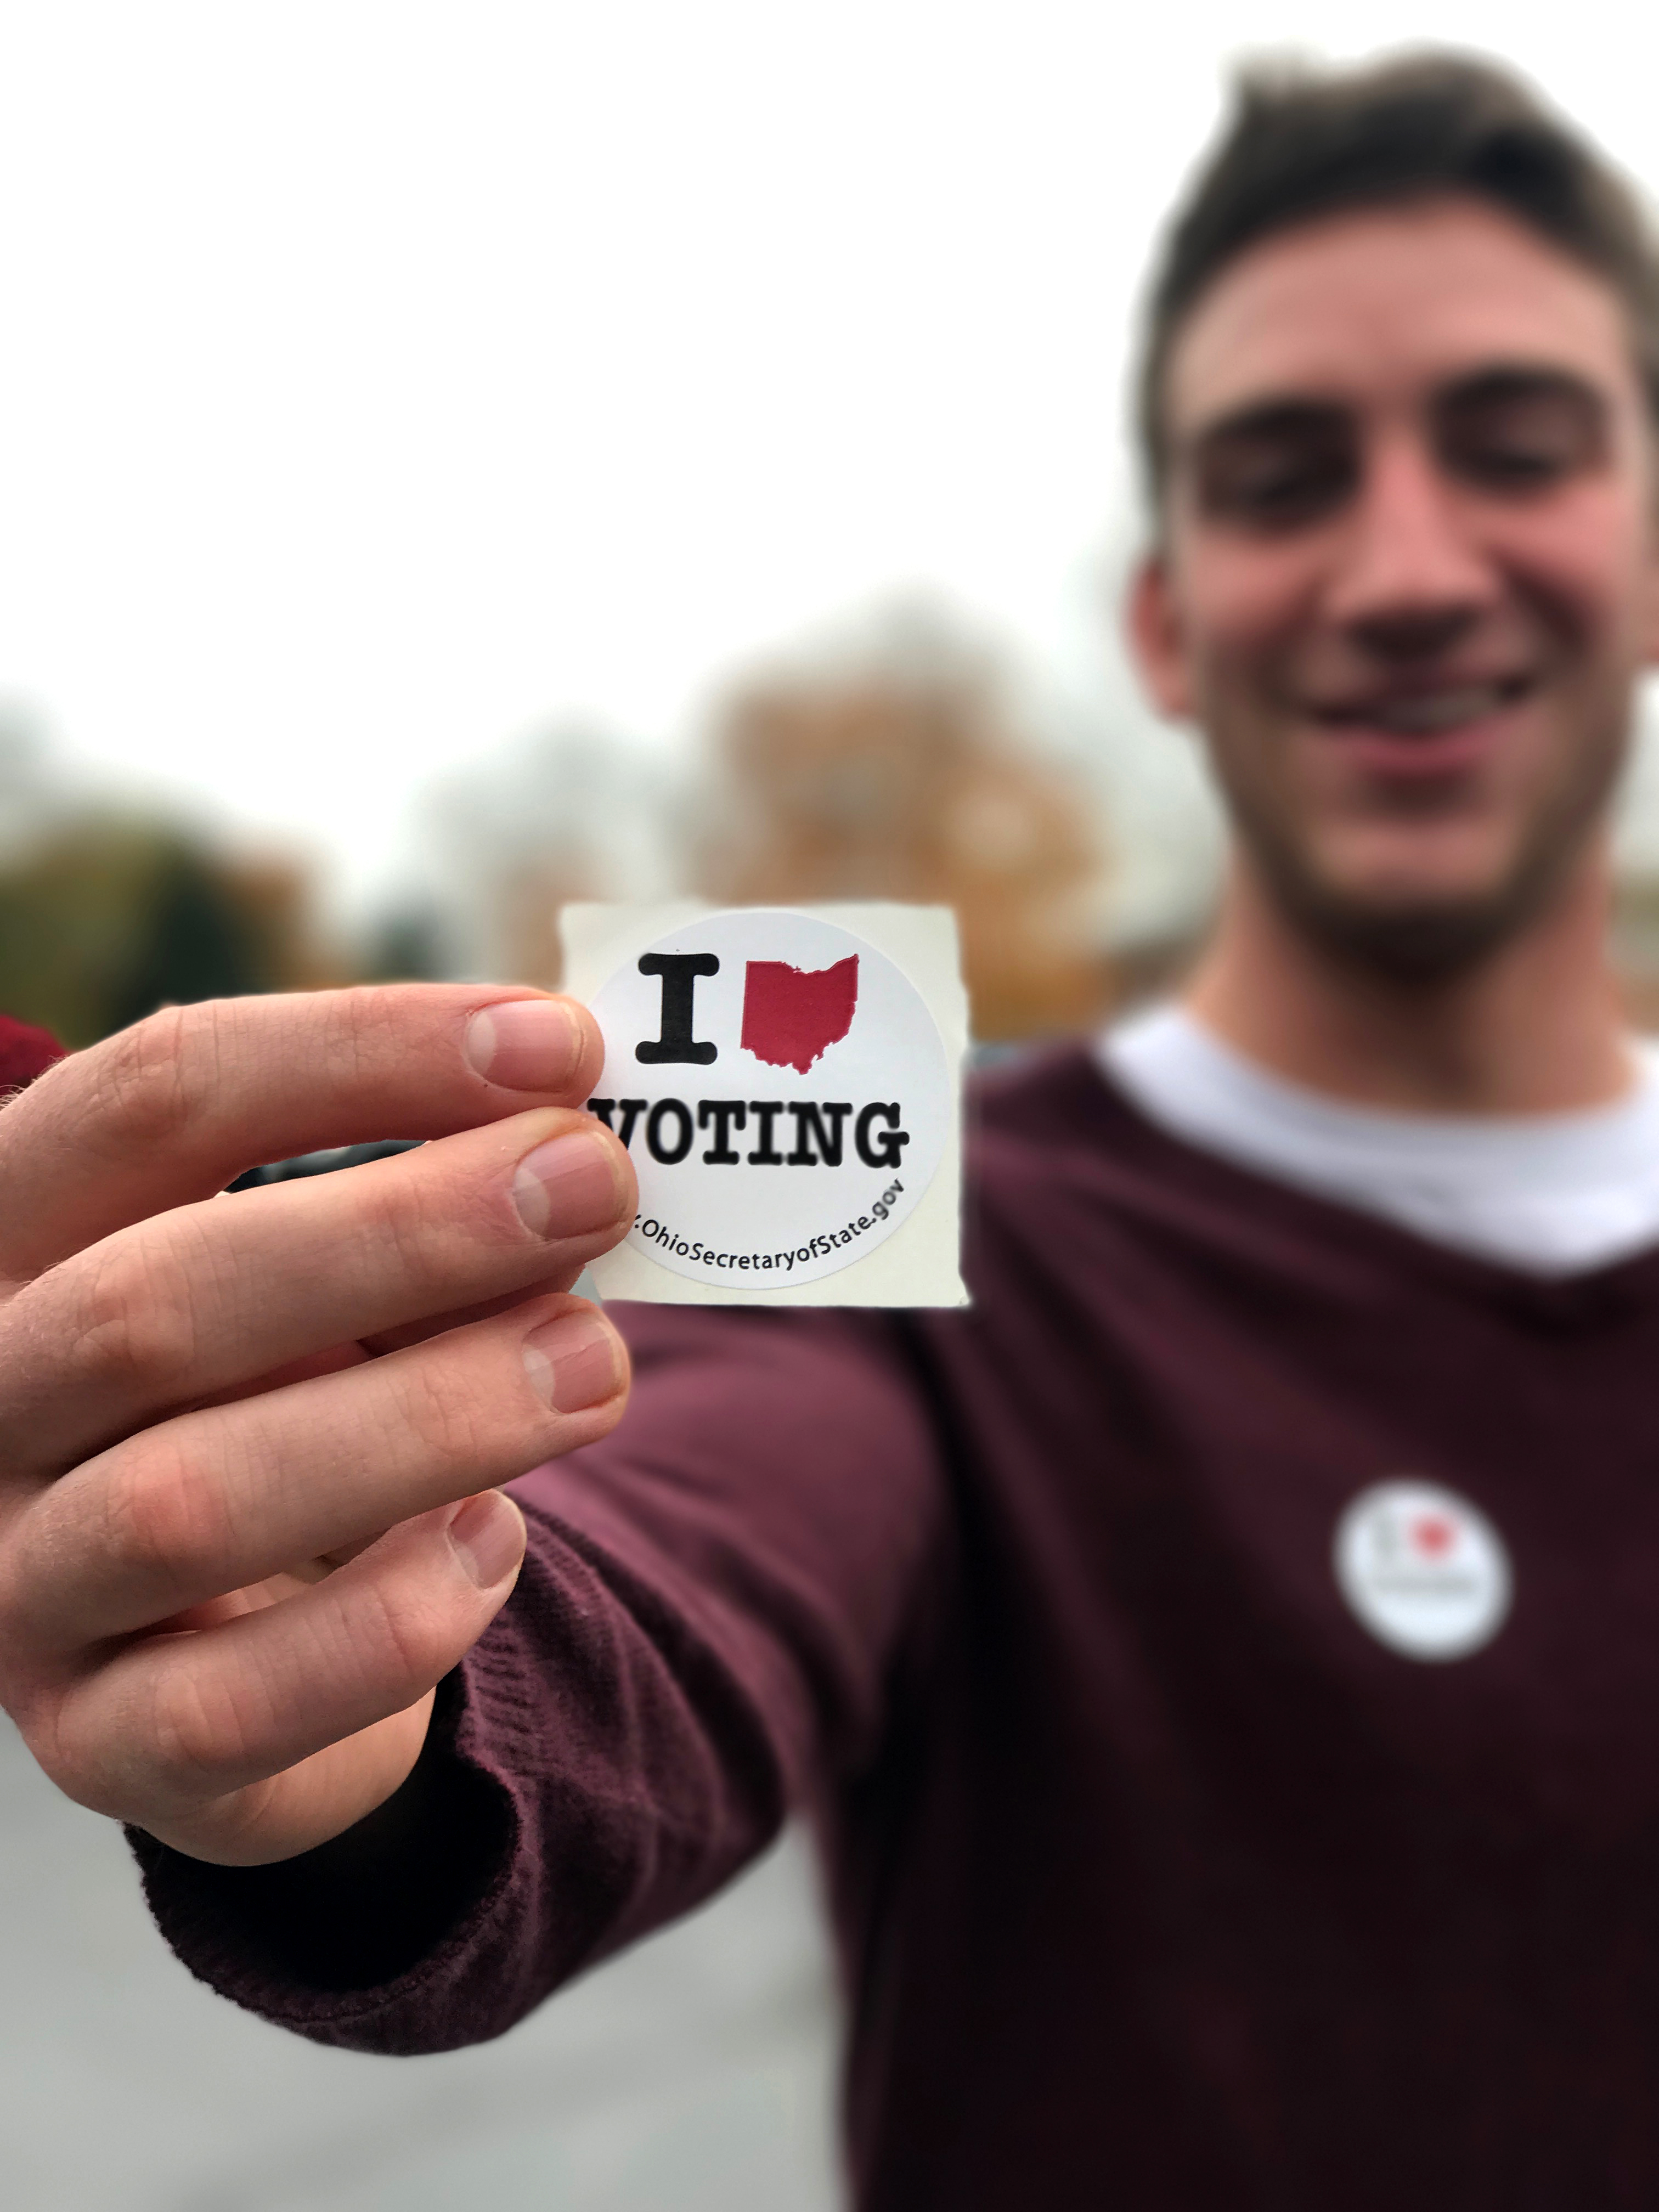 Sophomore Cedarville University student Andrew Ballentine was one of many students who voted.